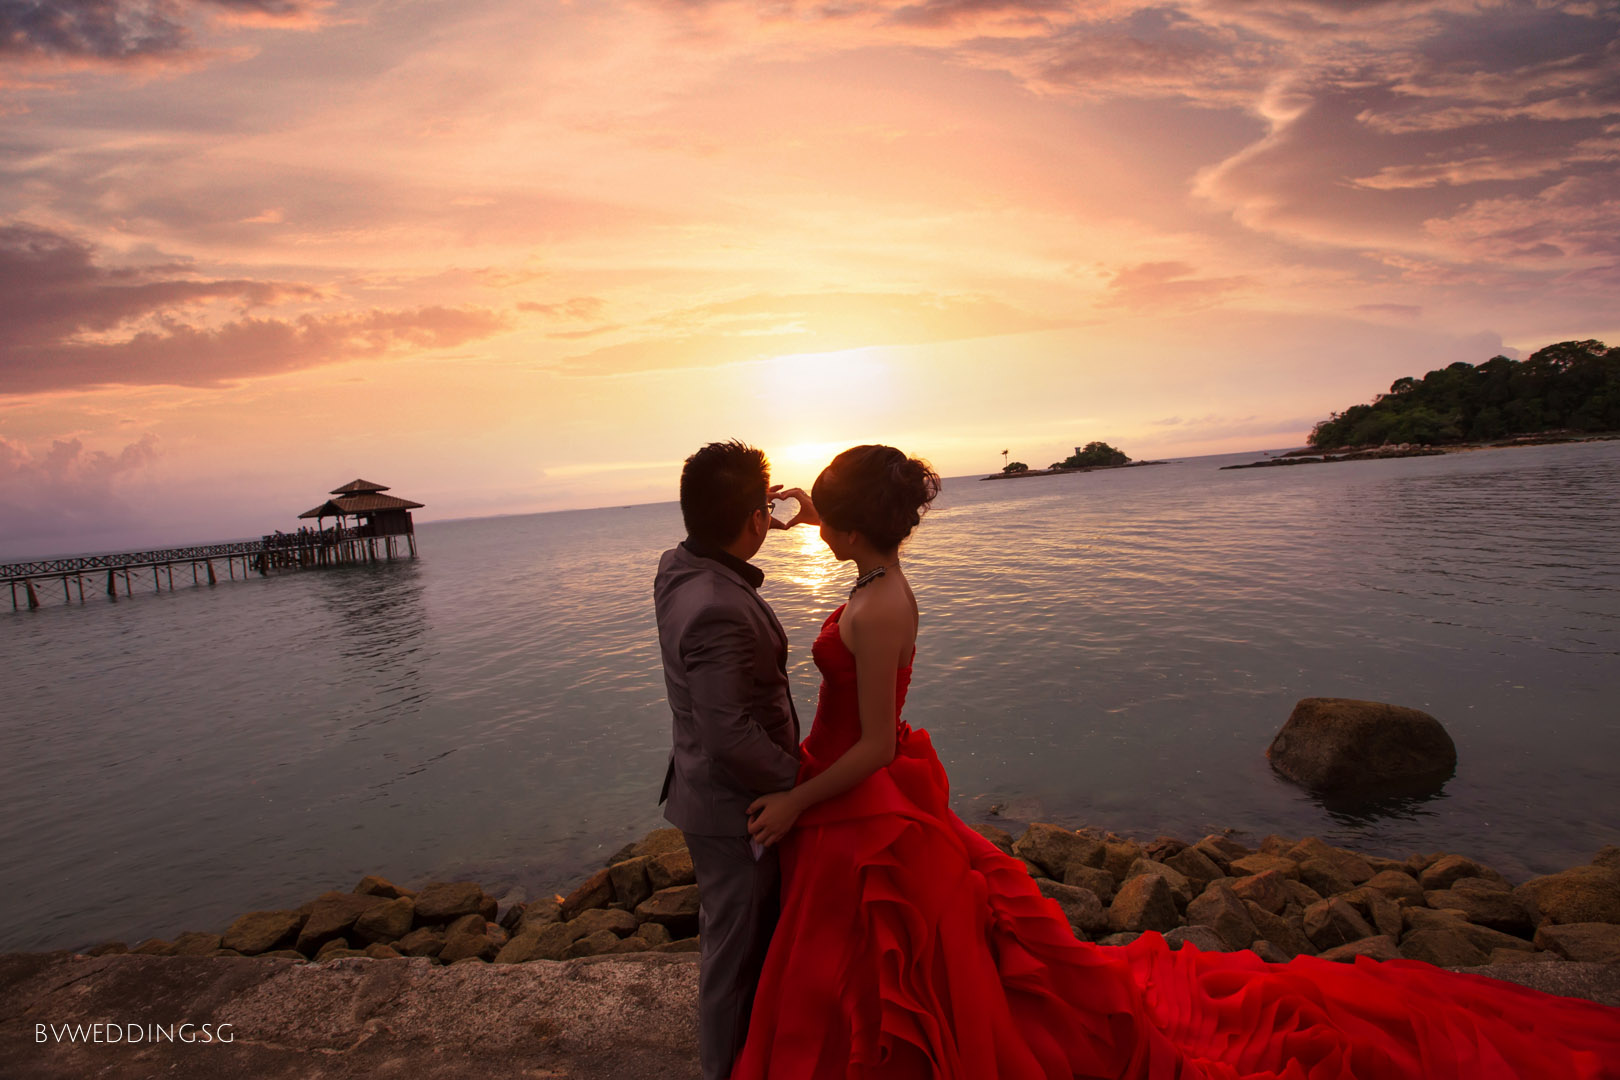 Pre-wedding photoshoot at bintan island with sunset